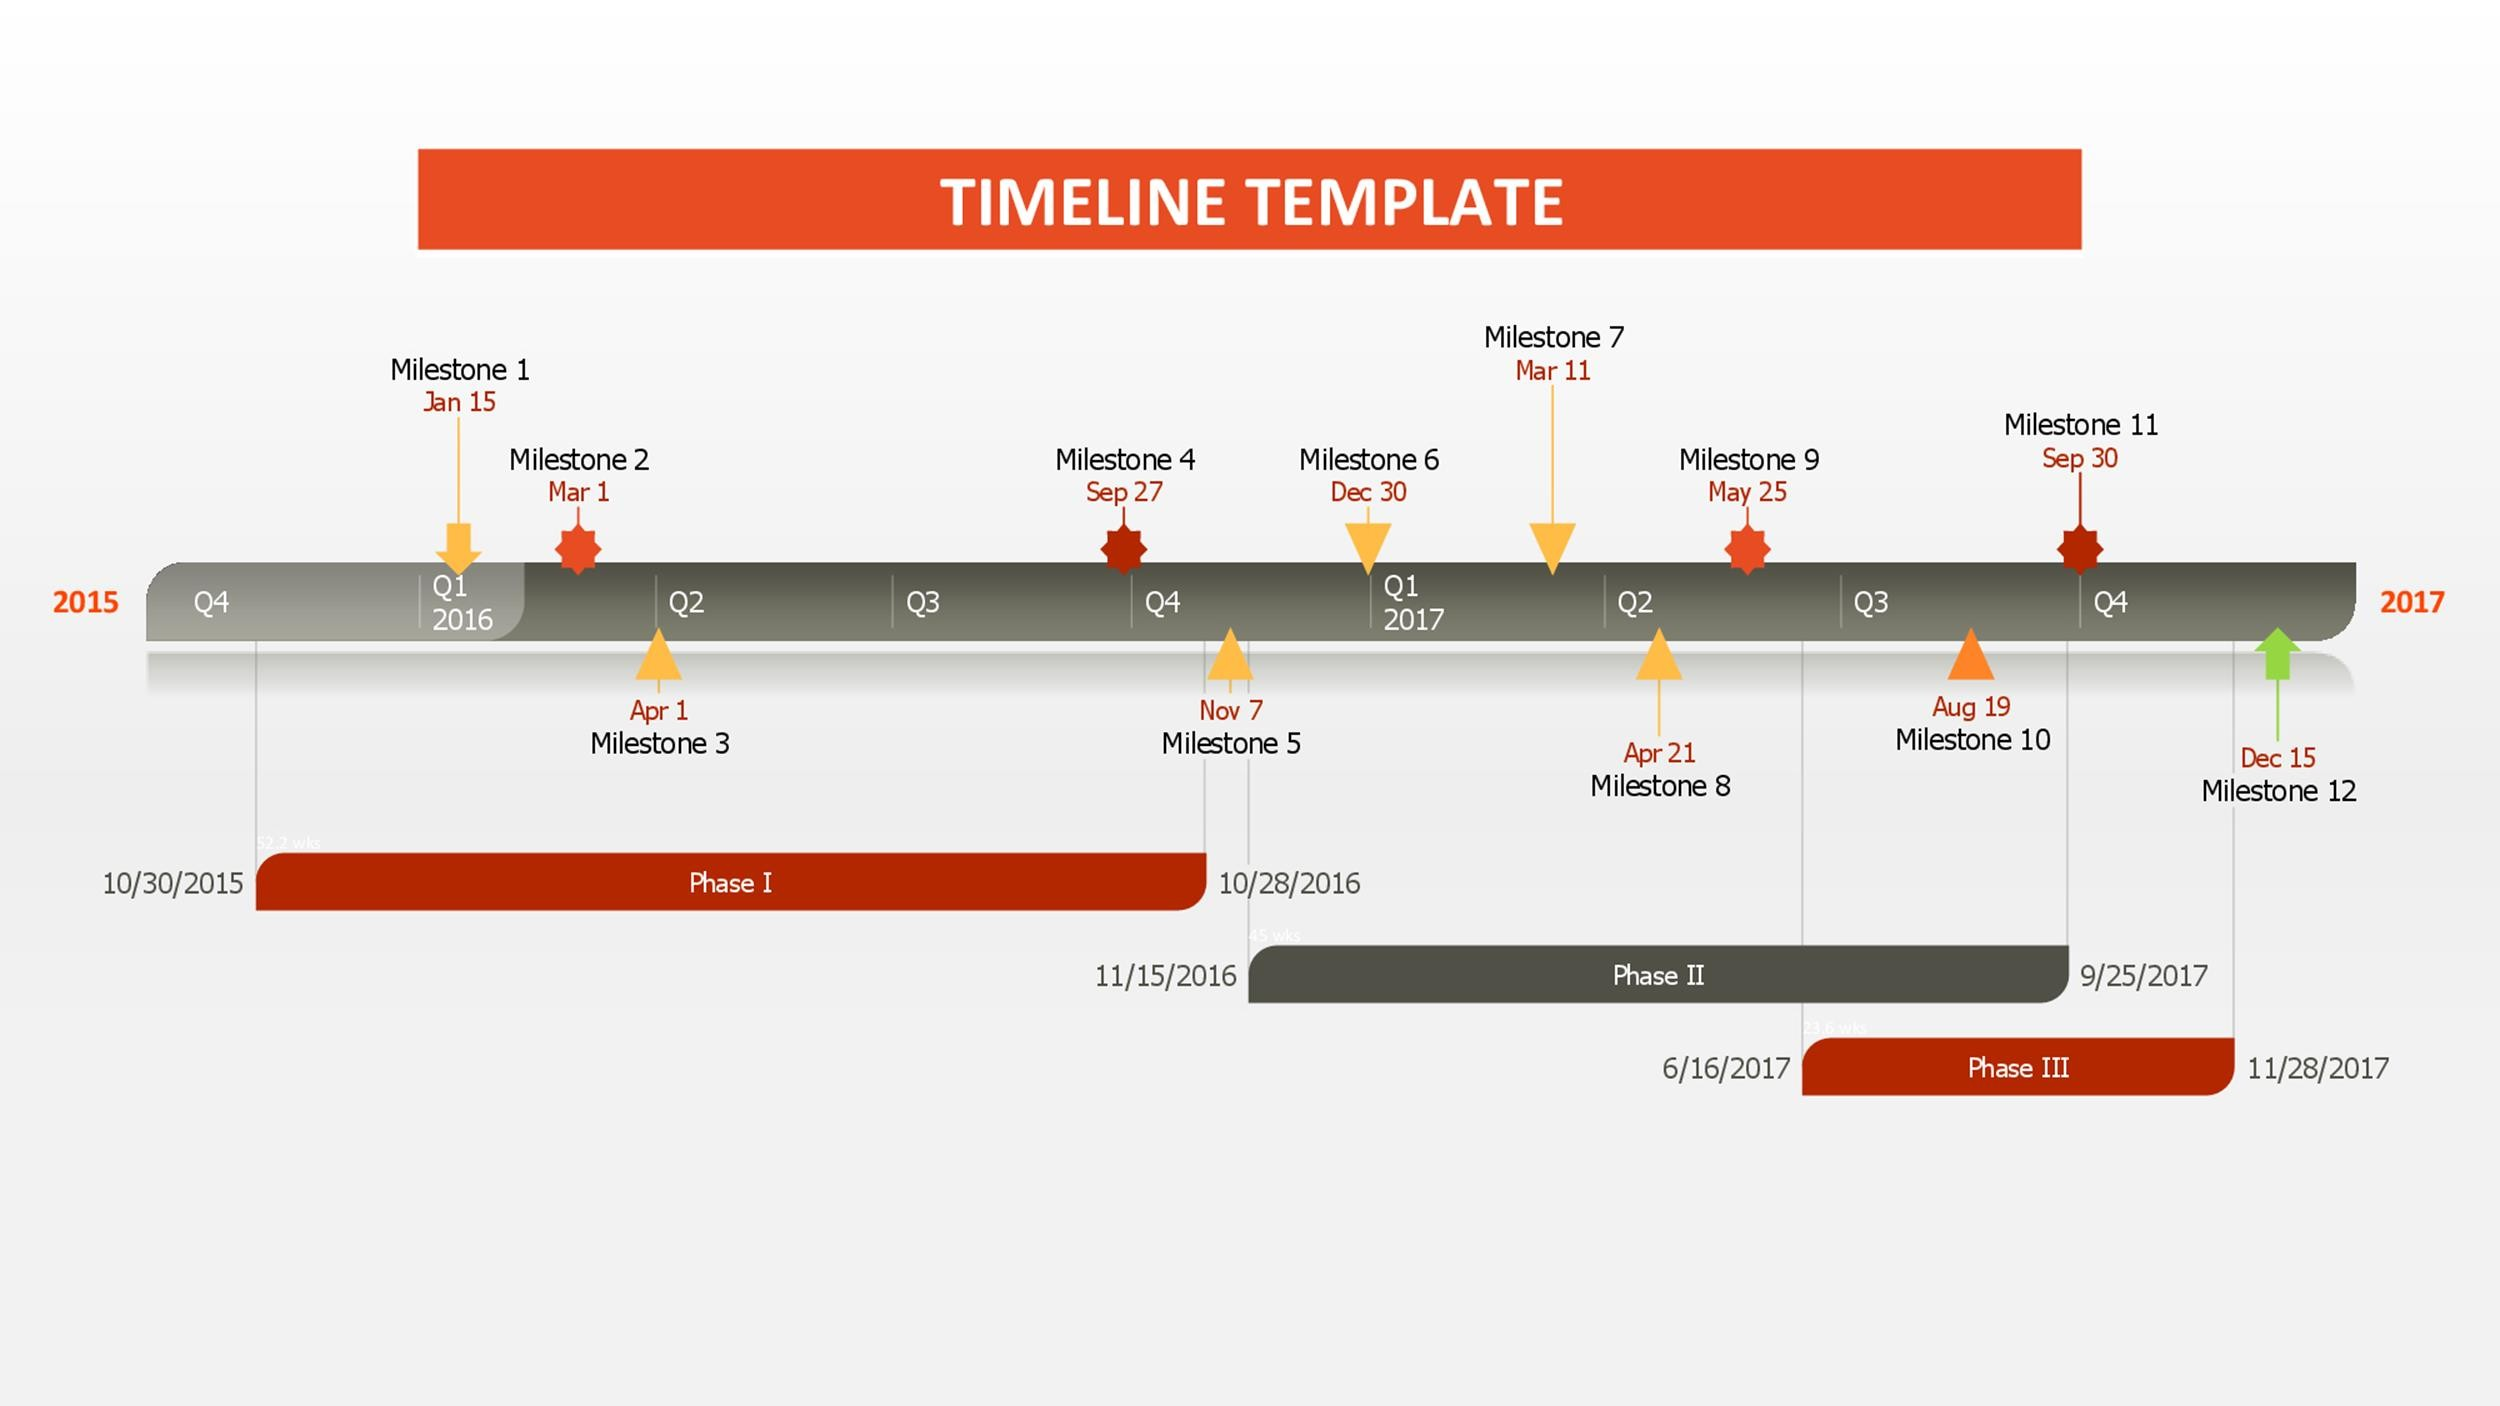 30 timeline templates excel power point word template lab printable timeline template 03 toneelgroepblik Images